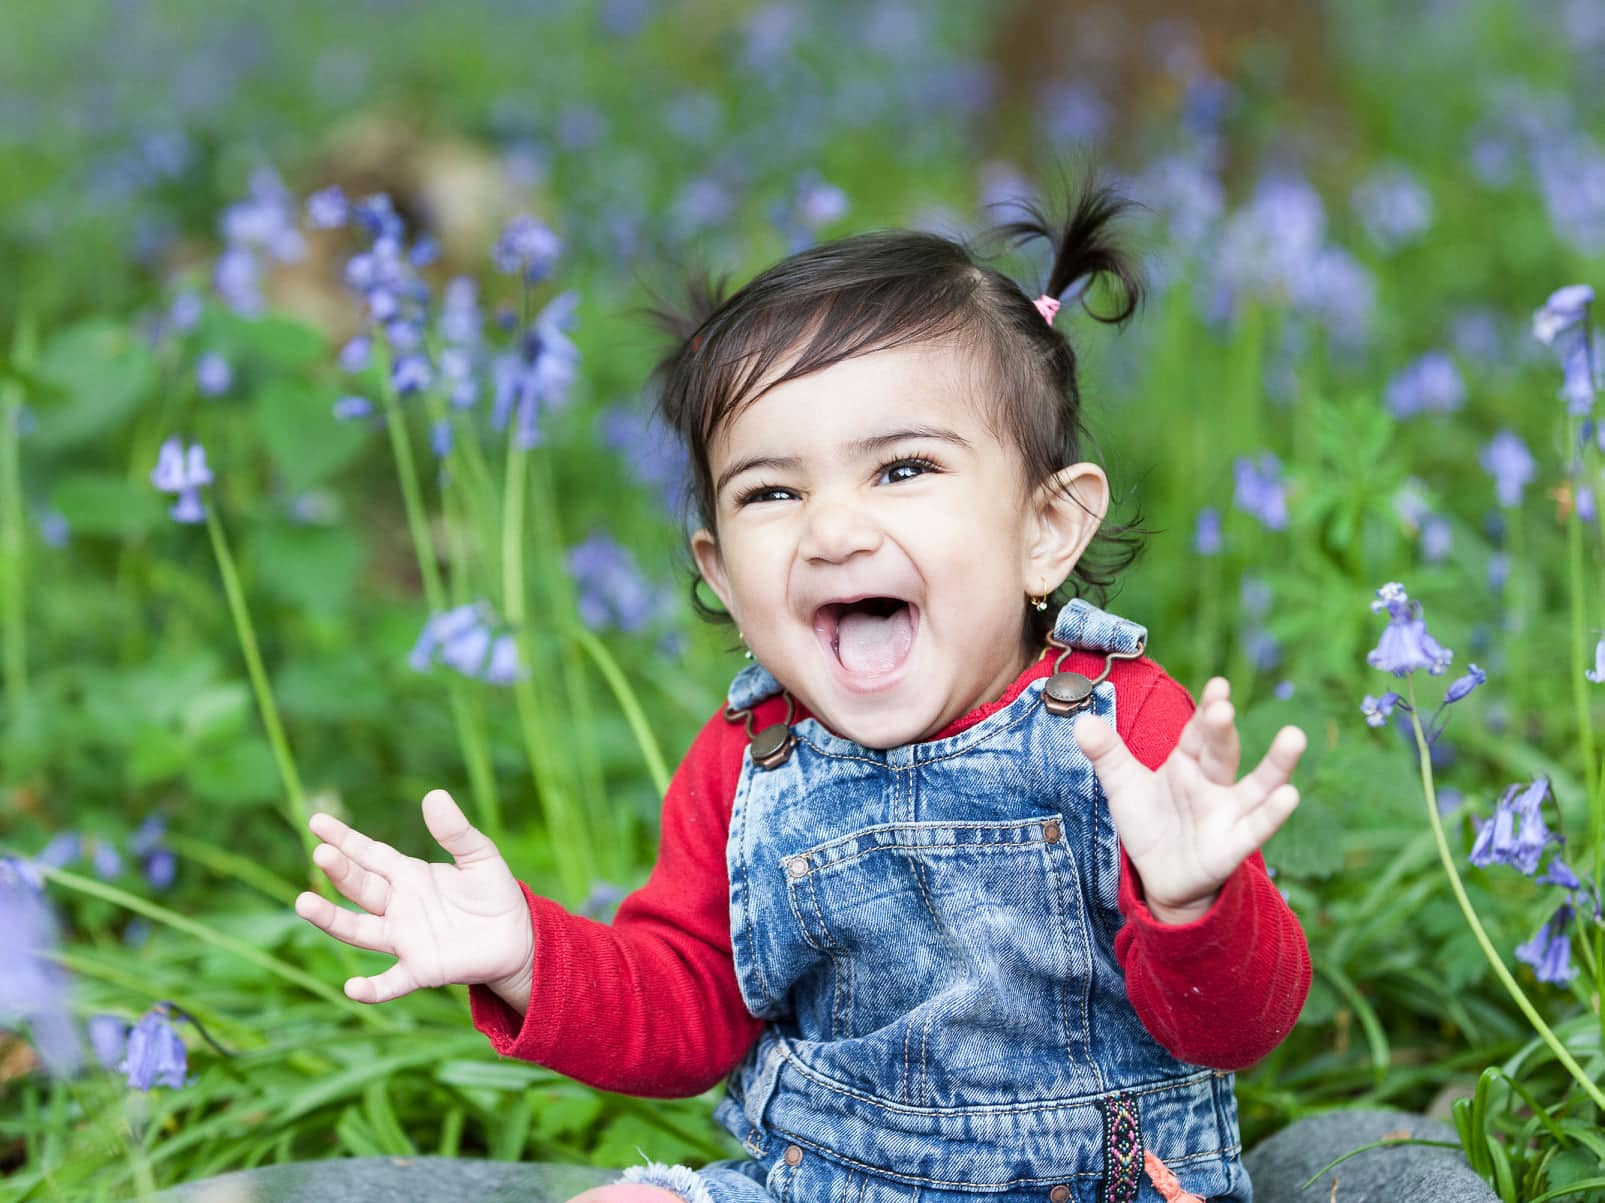 little girl with bunchies sat in the bluebells with a stunning smile at her Bexley family photoshoot